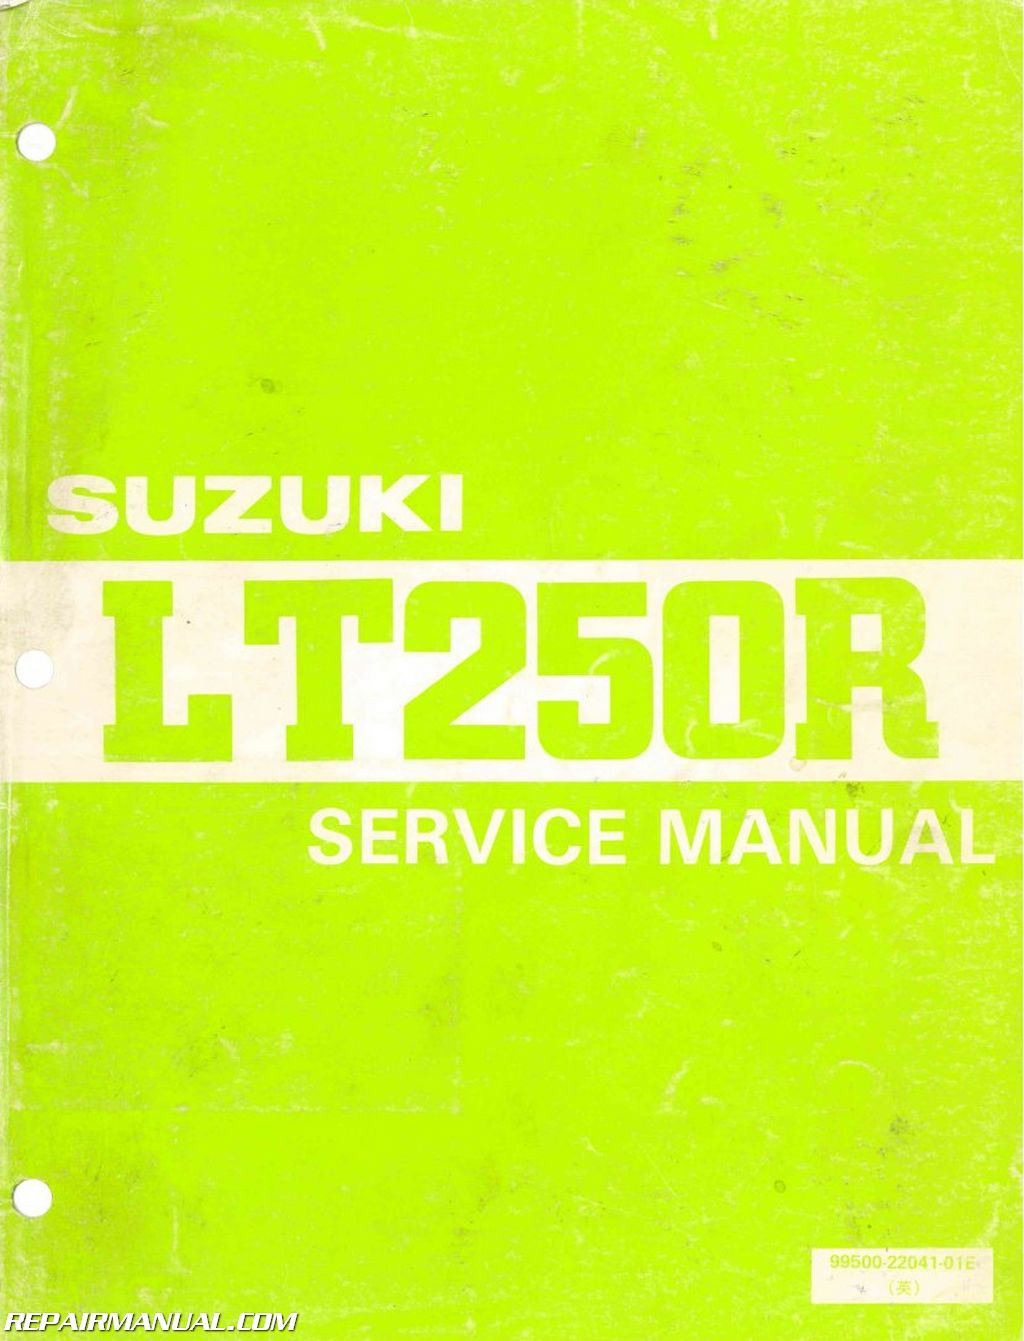 hight resolution of 1985 1986 suzuki lt250r atv service manual1985 1986 suzuki lt250r atv service manual jpg